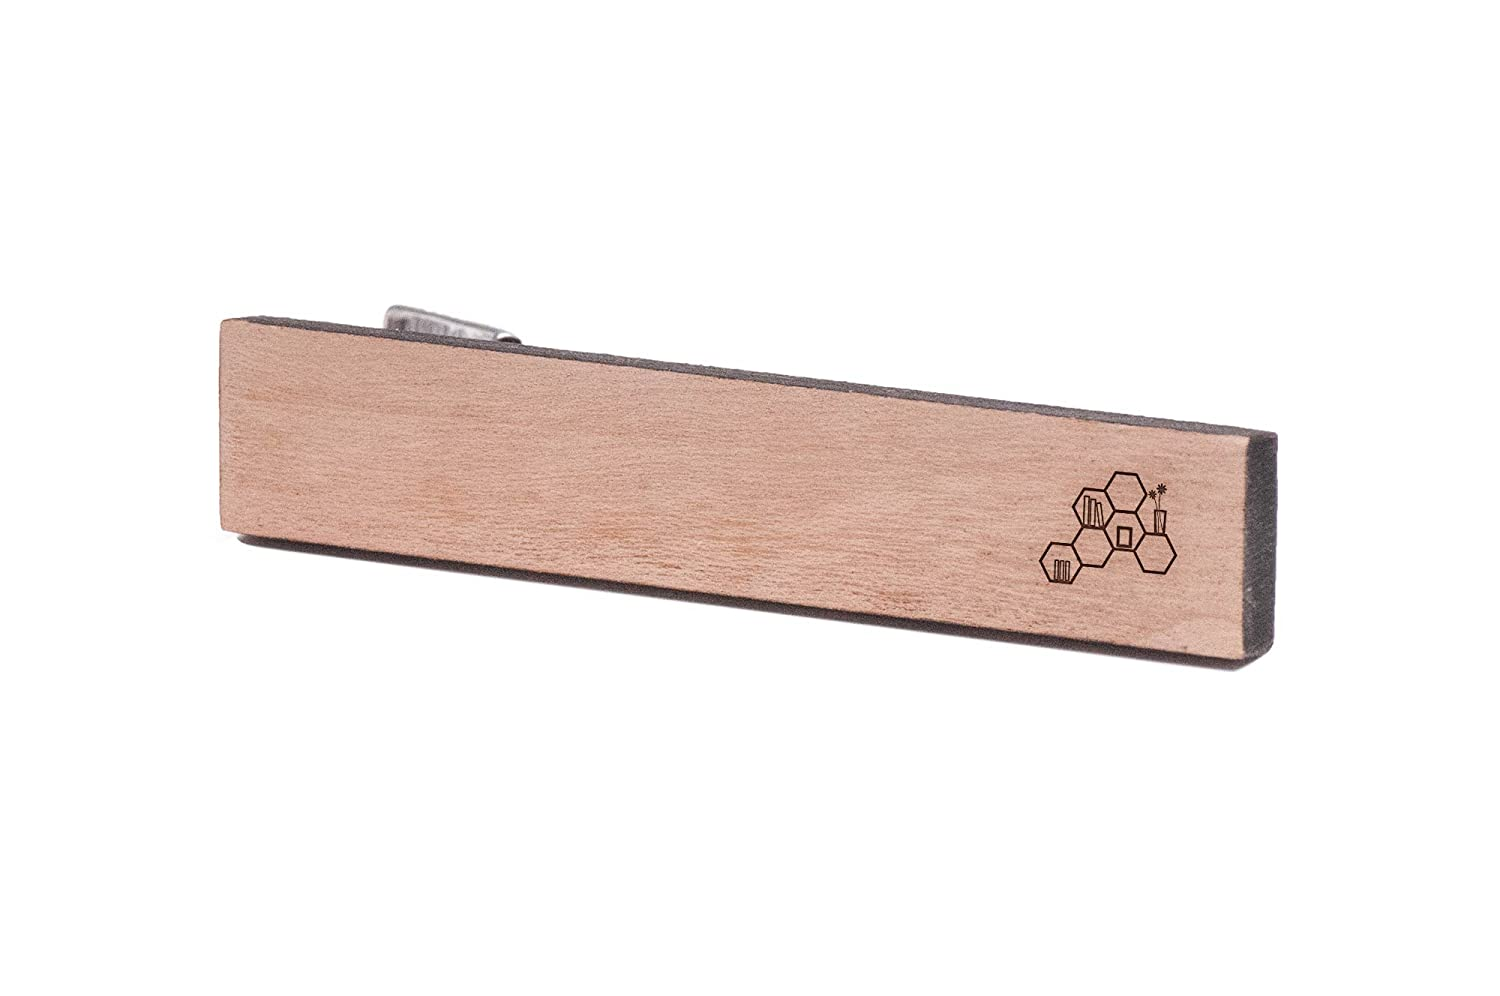 Cherry Wood Tie Bar Engraved in The USA Wooden Accessories Company Wooden Tie Clips with Laser Engraved Modular Bookcase Design